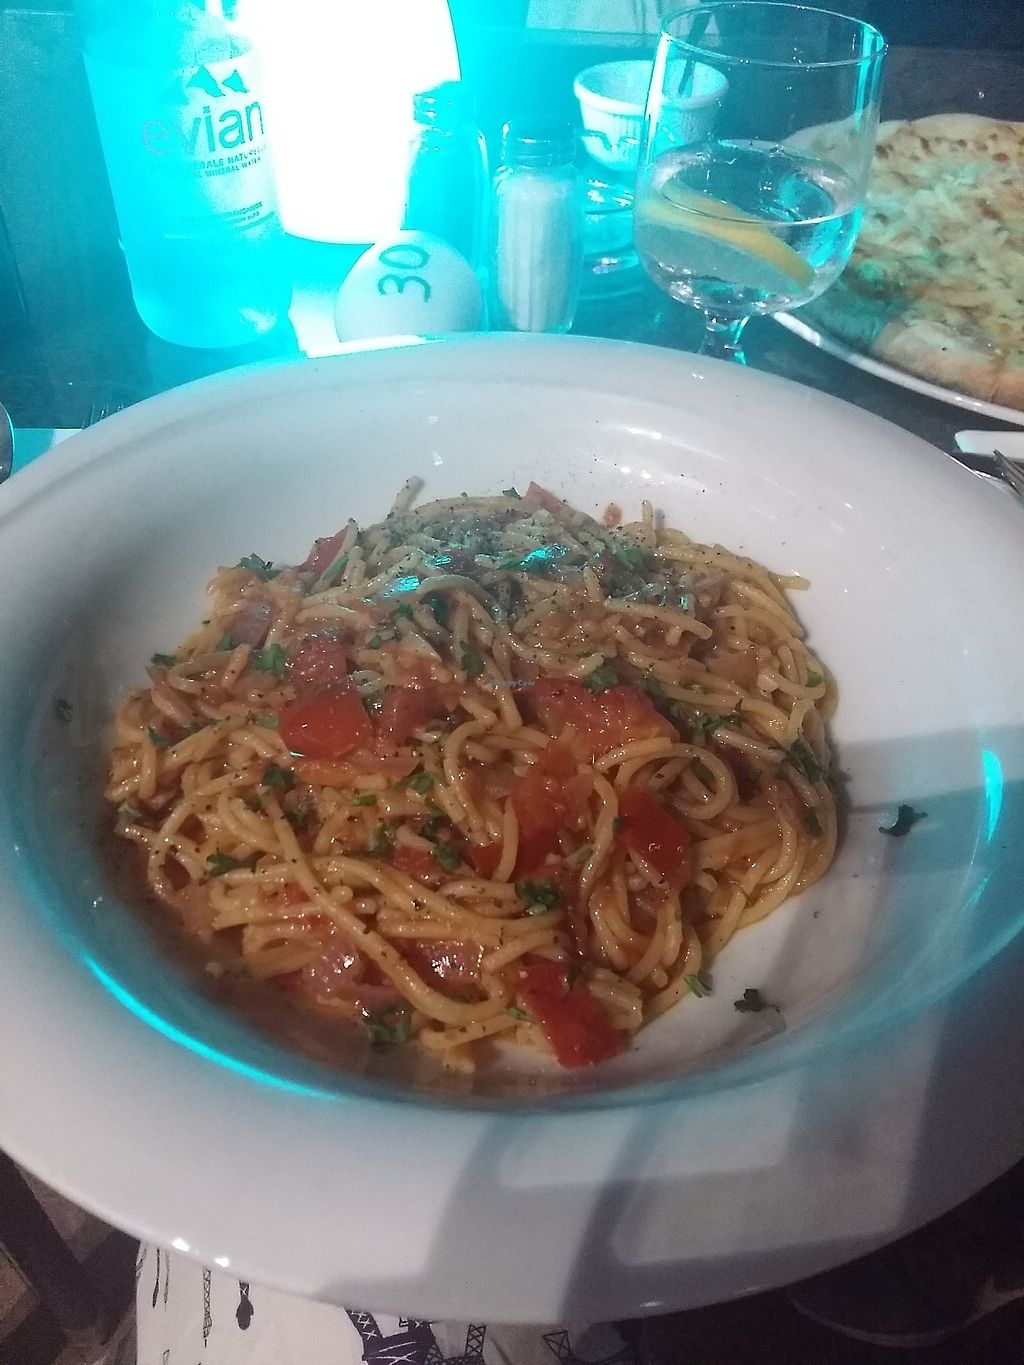 """Photo of Tate Cafe Bar  by <a href=""""/members/profile/ninaframbuesa"""">ninaframbuesa</a> <br/>Asian-inspired dish, not a good match with the spaghetti <br/> August 5, 2017  - <a href='/contact/abuse/image/14246/289224'>Report</a>"""